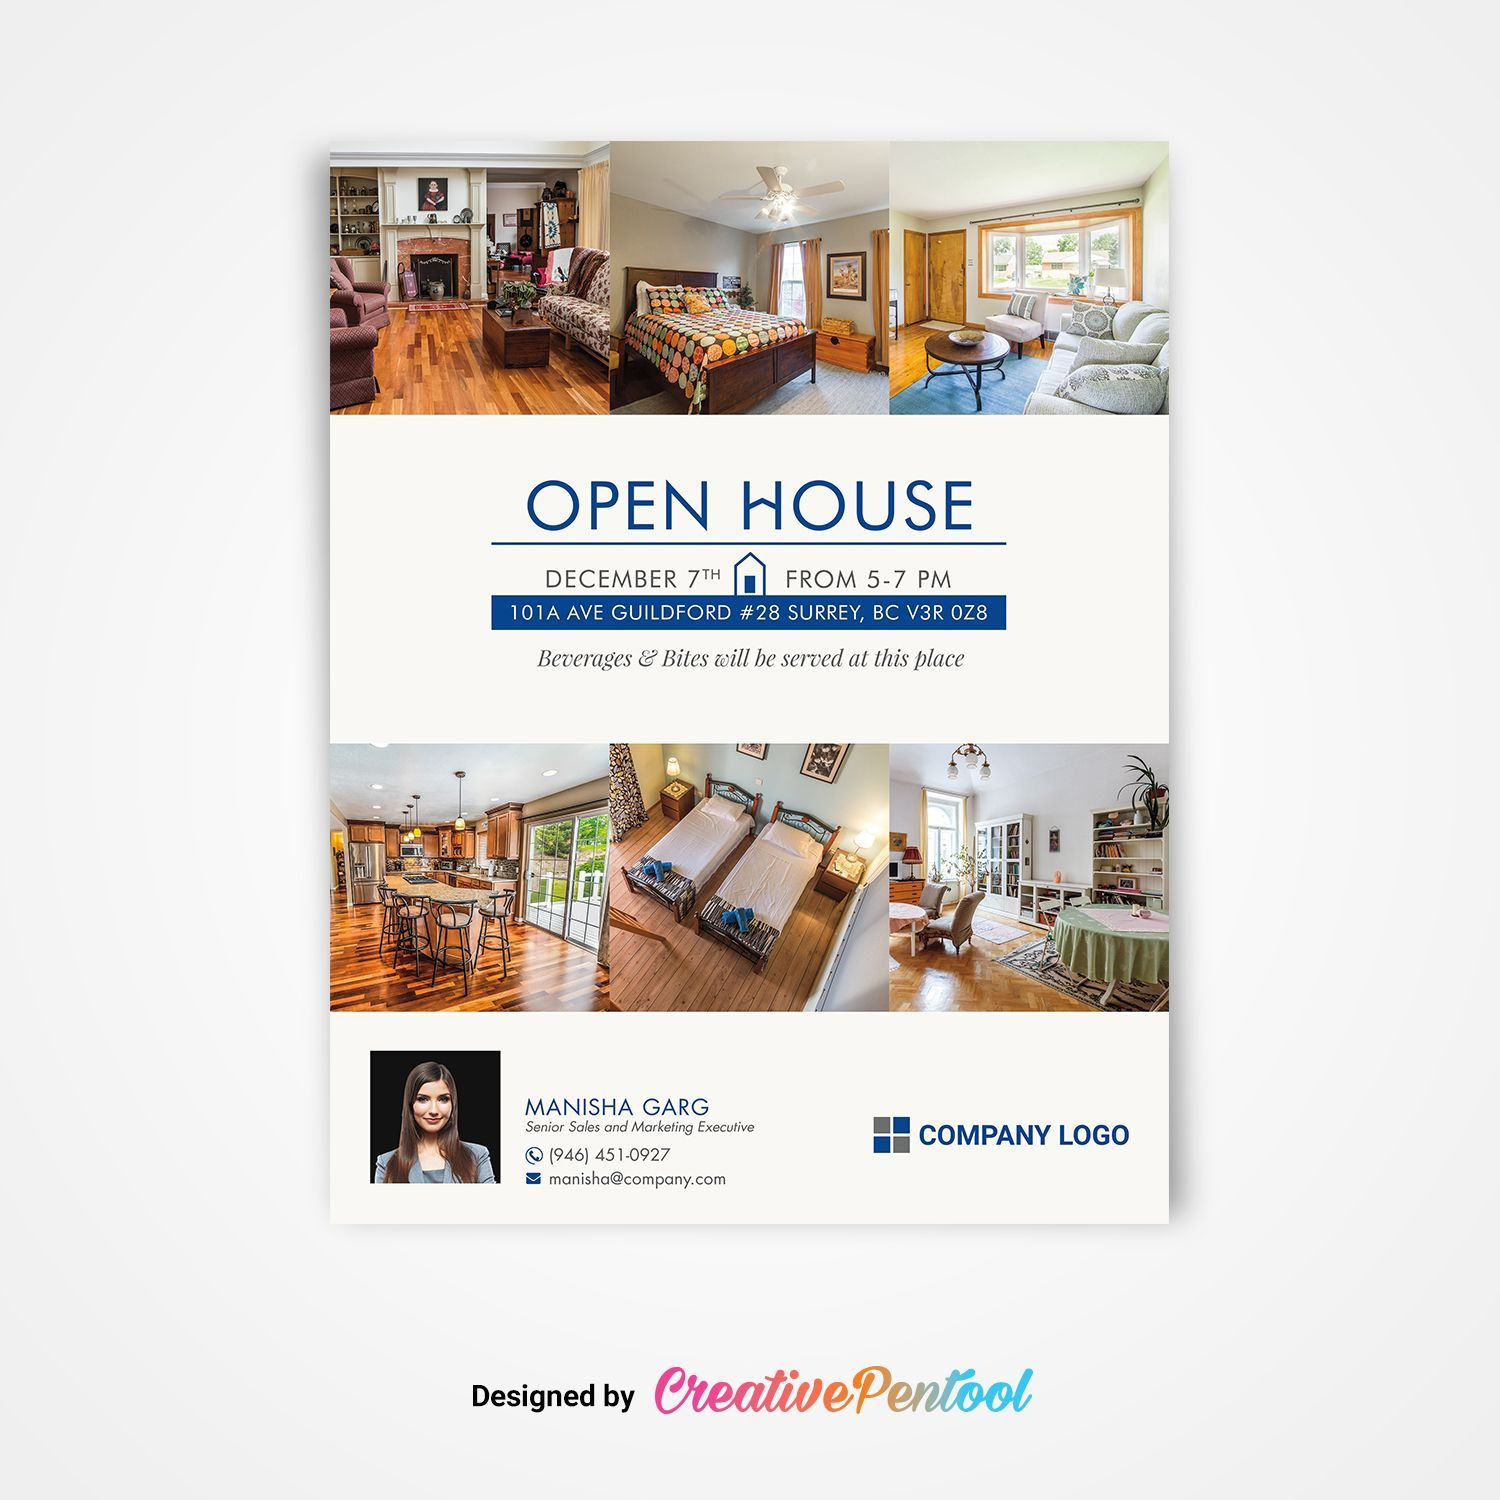 003 Magnificent Free Open House Flyer Template High Definition  Microsoft WordFull